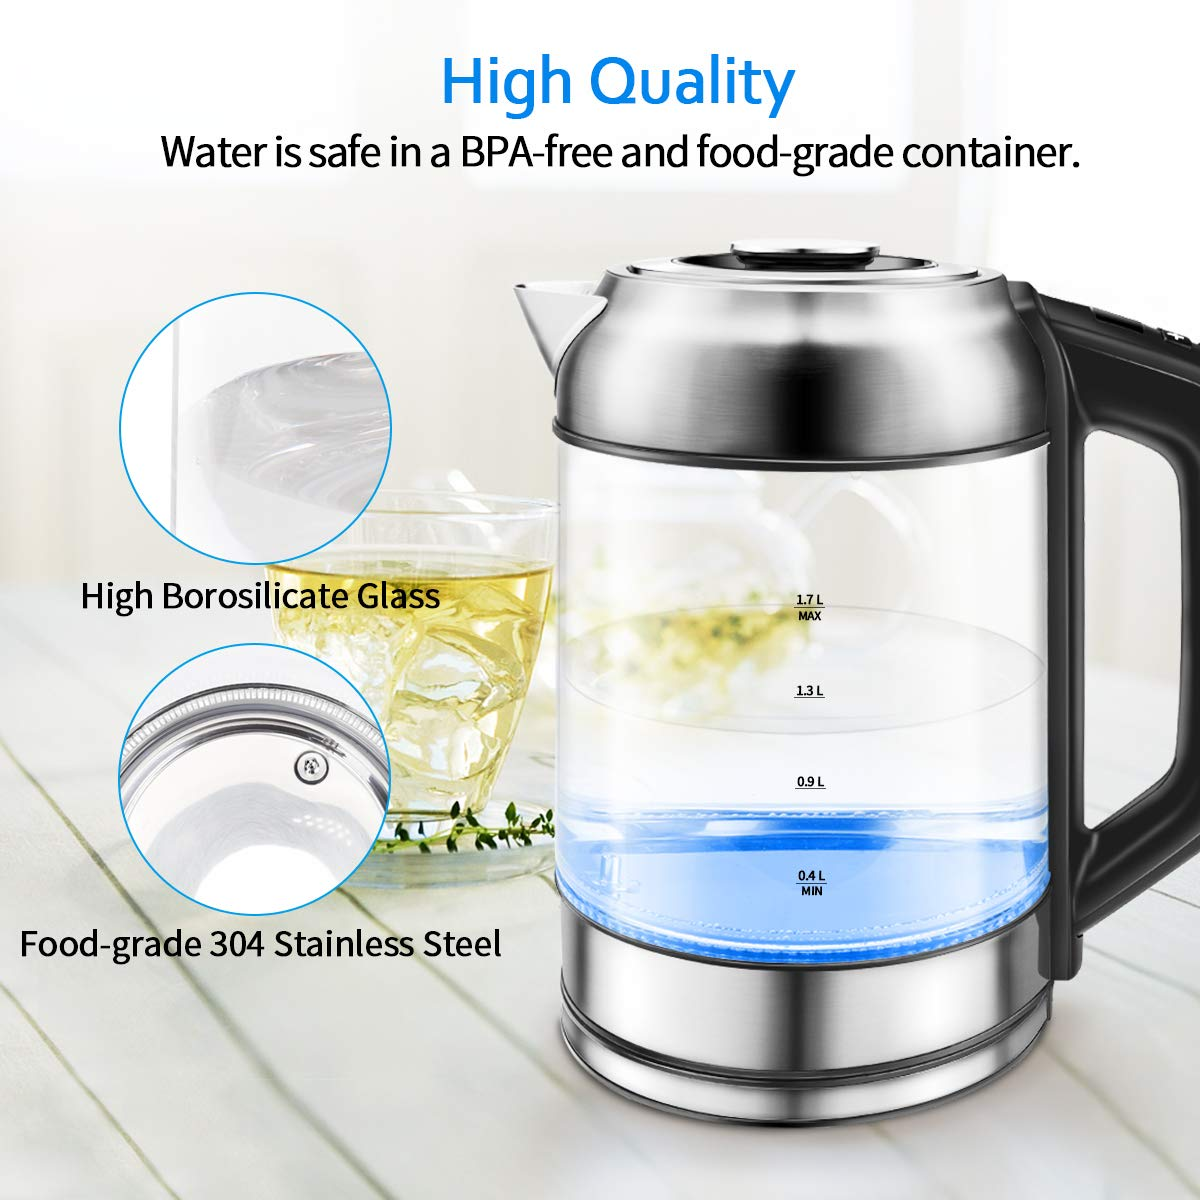 Glass Kettle Morpilot Electric Kettle with Stainless Steel Lid, 2200 W Fast Kettle for Tea Coffee, 1.7 L Electric Jug, LED Lighting, Automatic Shut-off